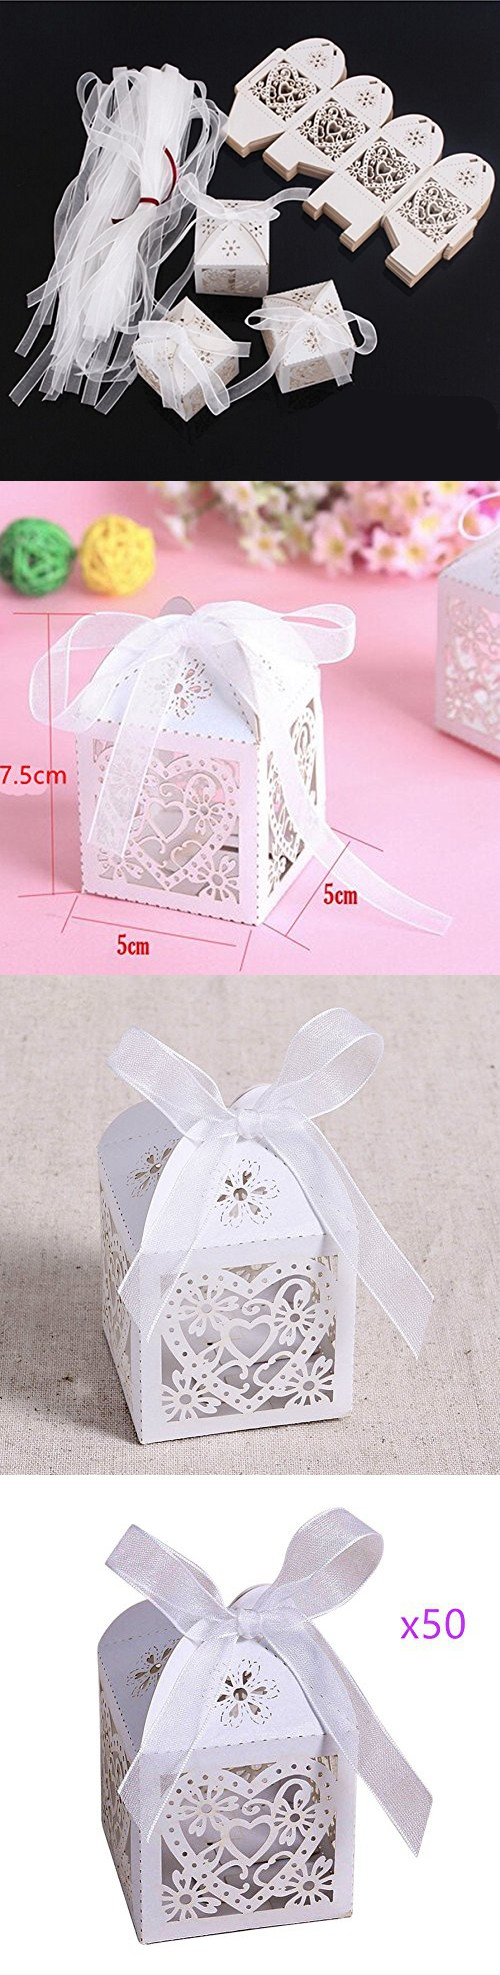 Yansanido candy Gift Boxes Bag with Ribbons Wedding Favors Candy ...